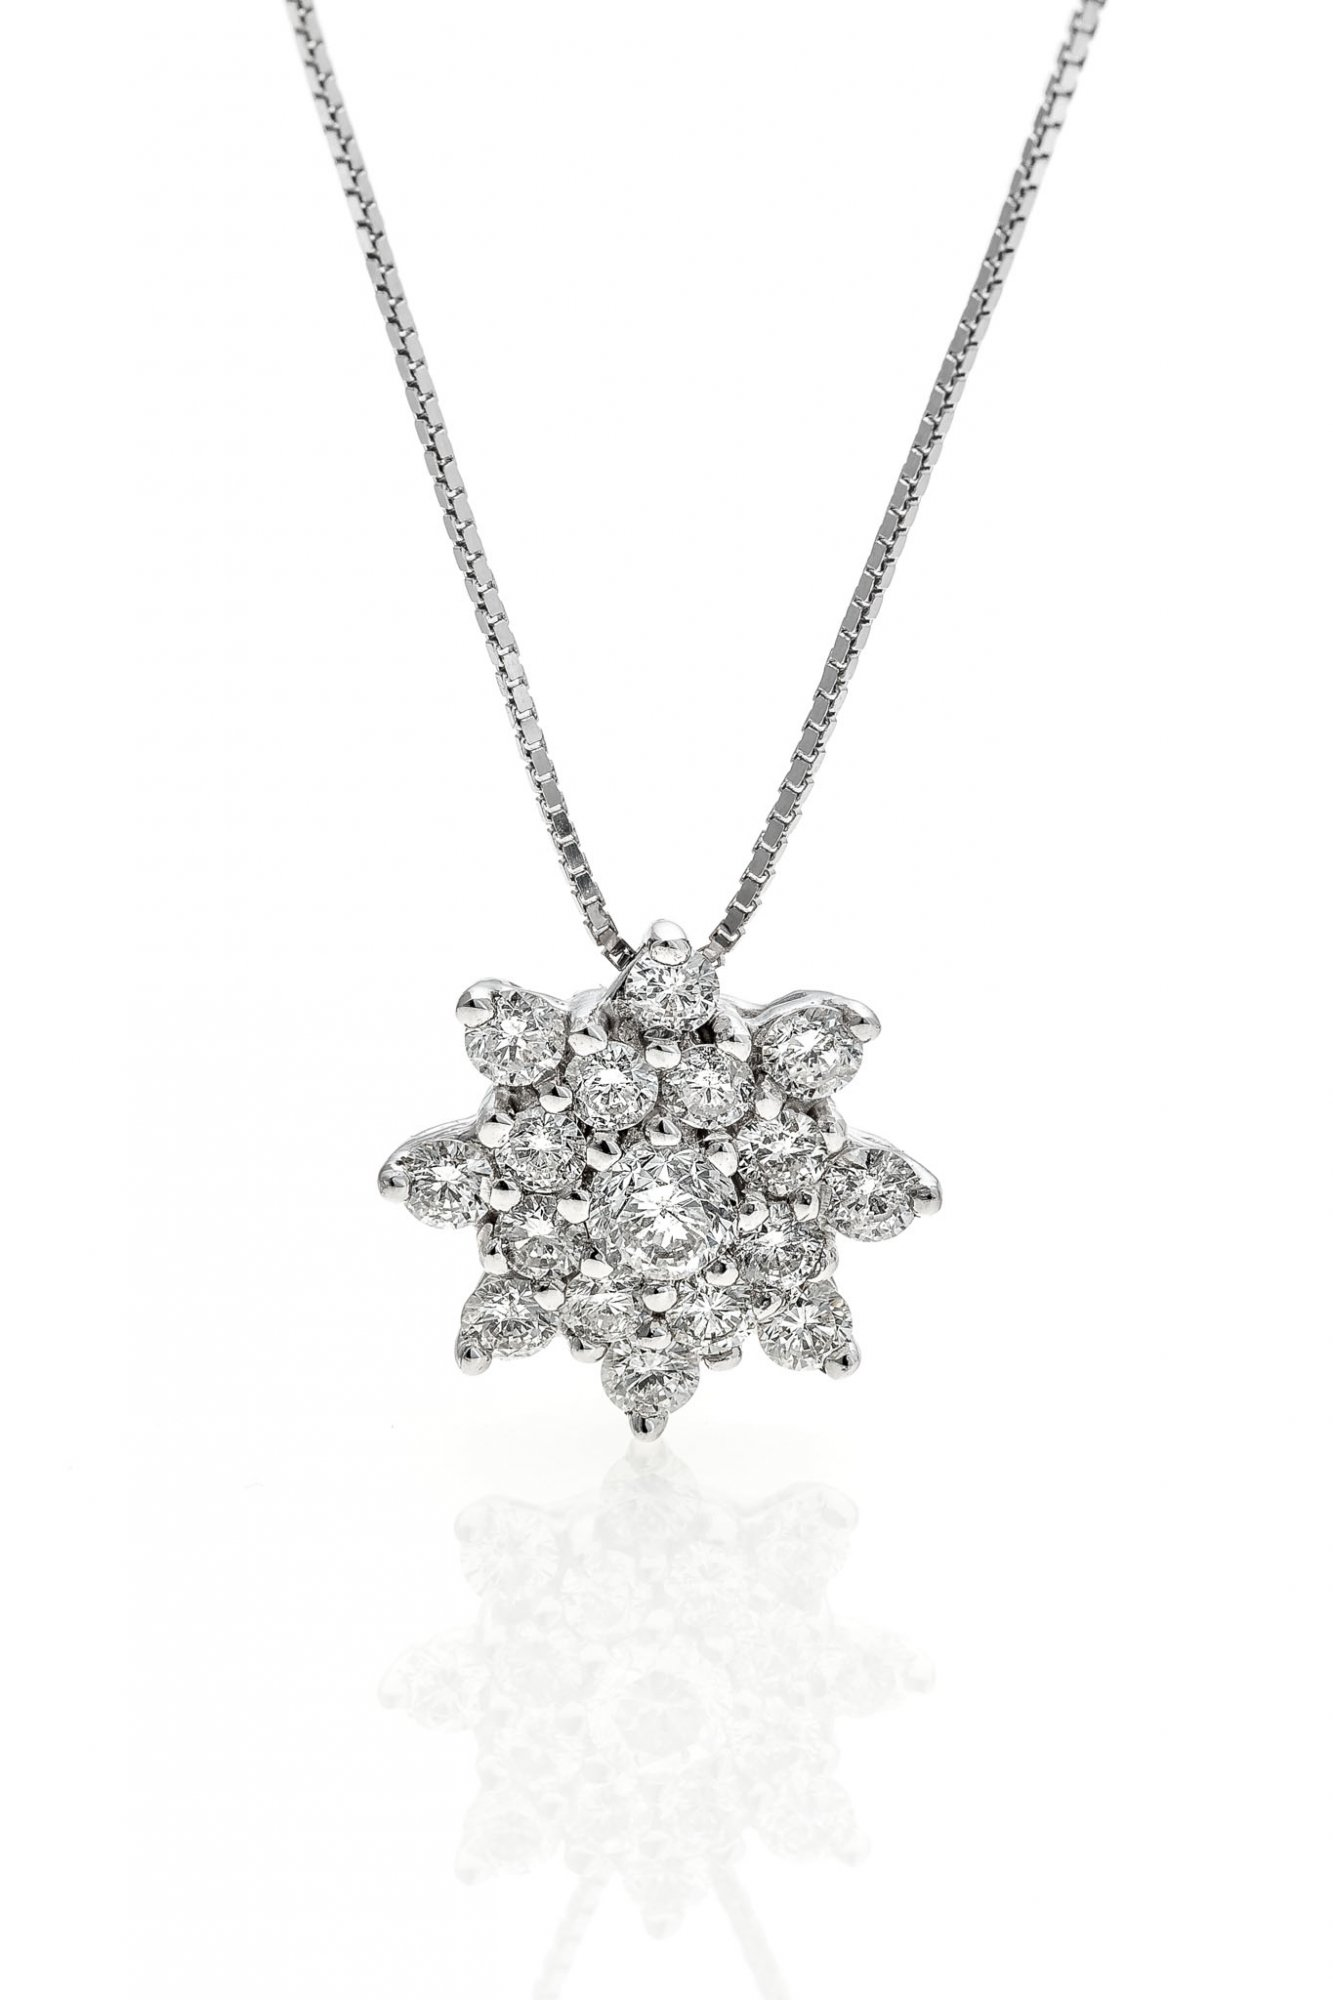 18 KT white gold necklace with round brilliant cut diamonds ct.0.50 + ct.0.10 VS1 E color